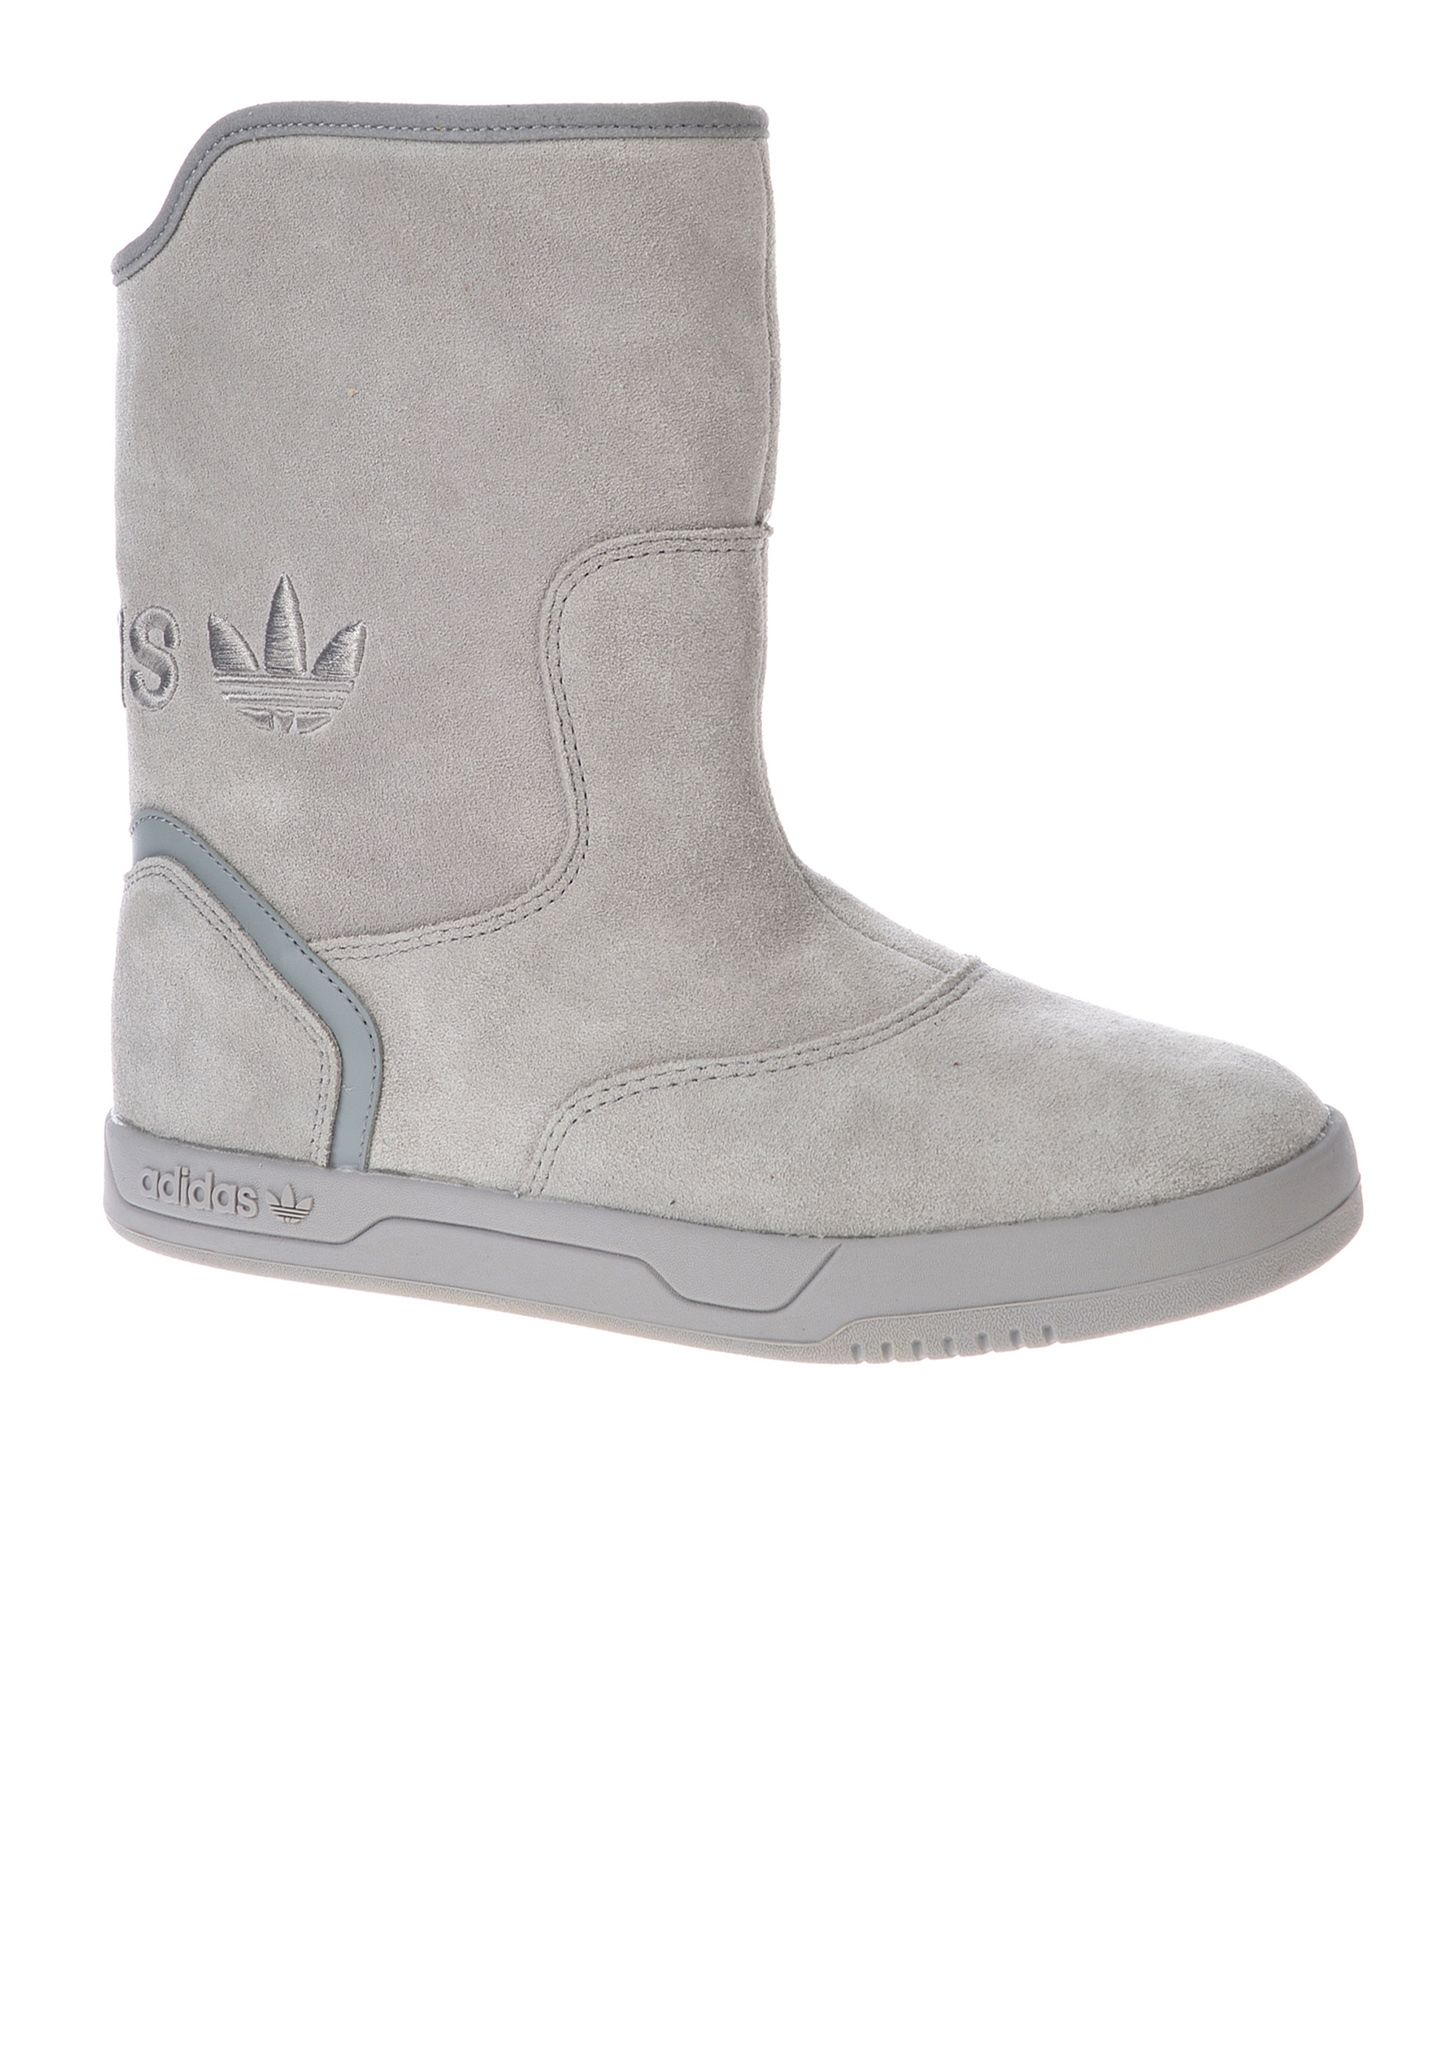 adidas winter boots grau damen